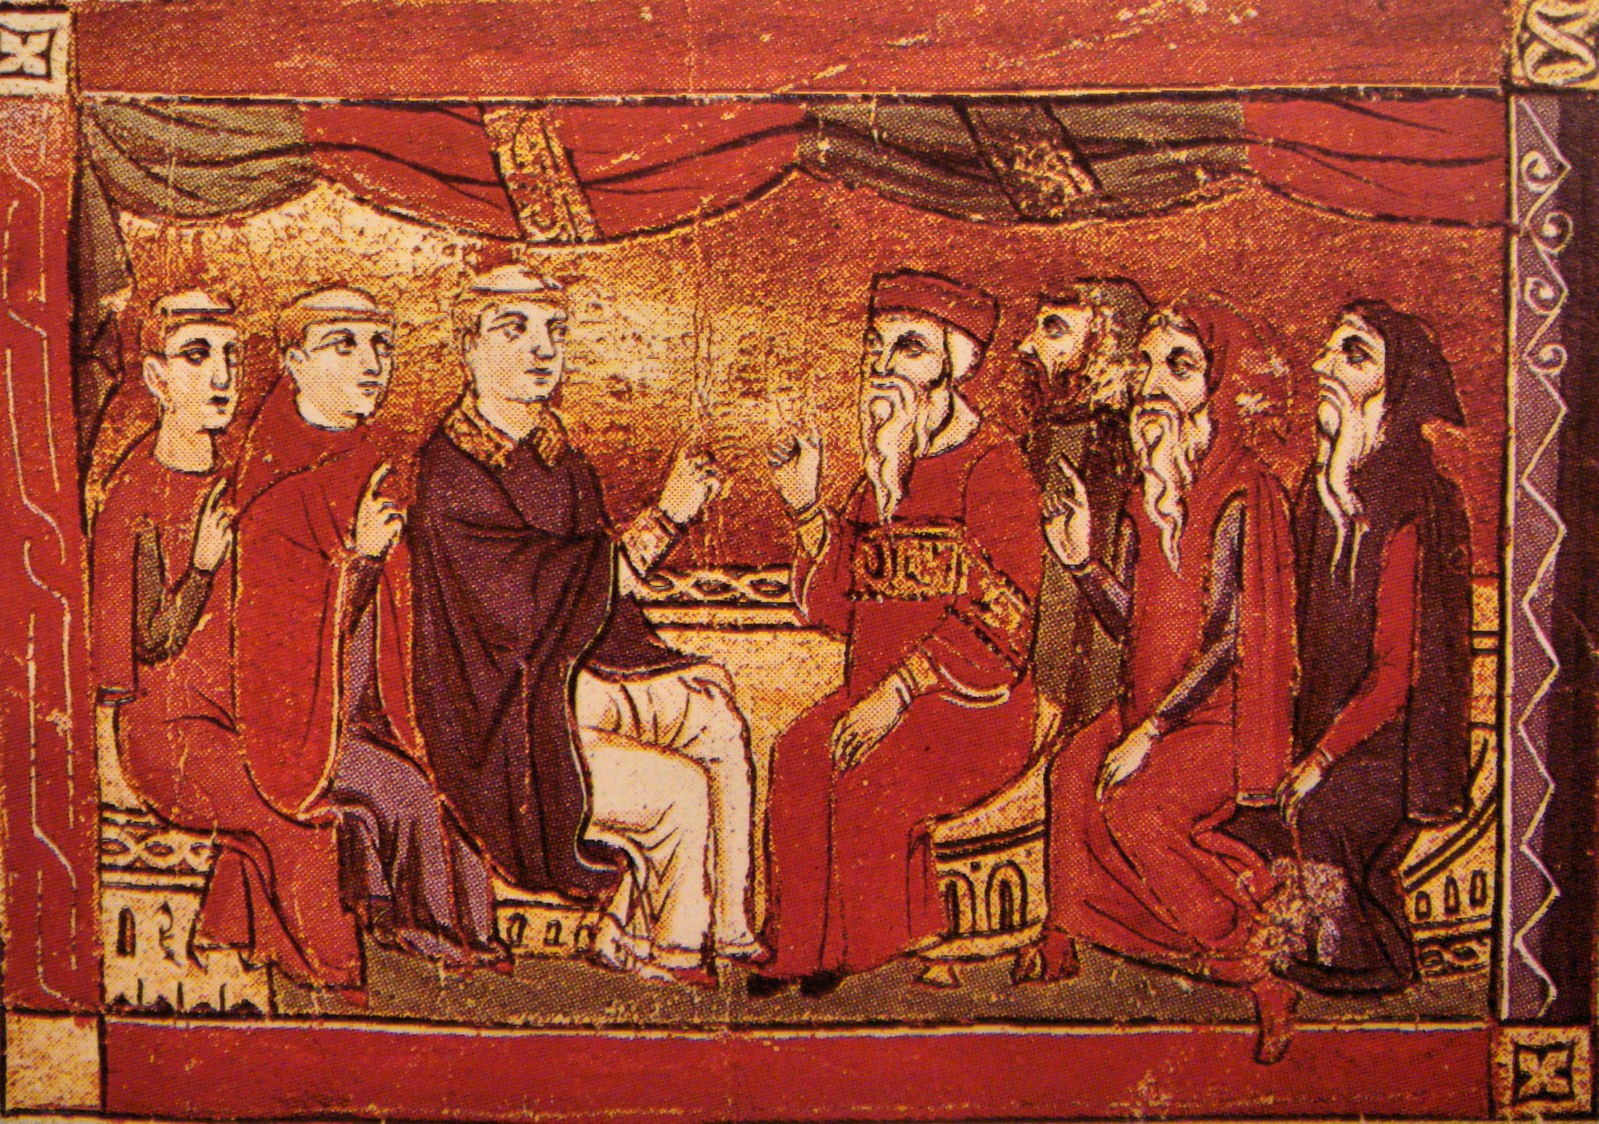 Debate between Catholics and Oriental Christians in the 13th century